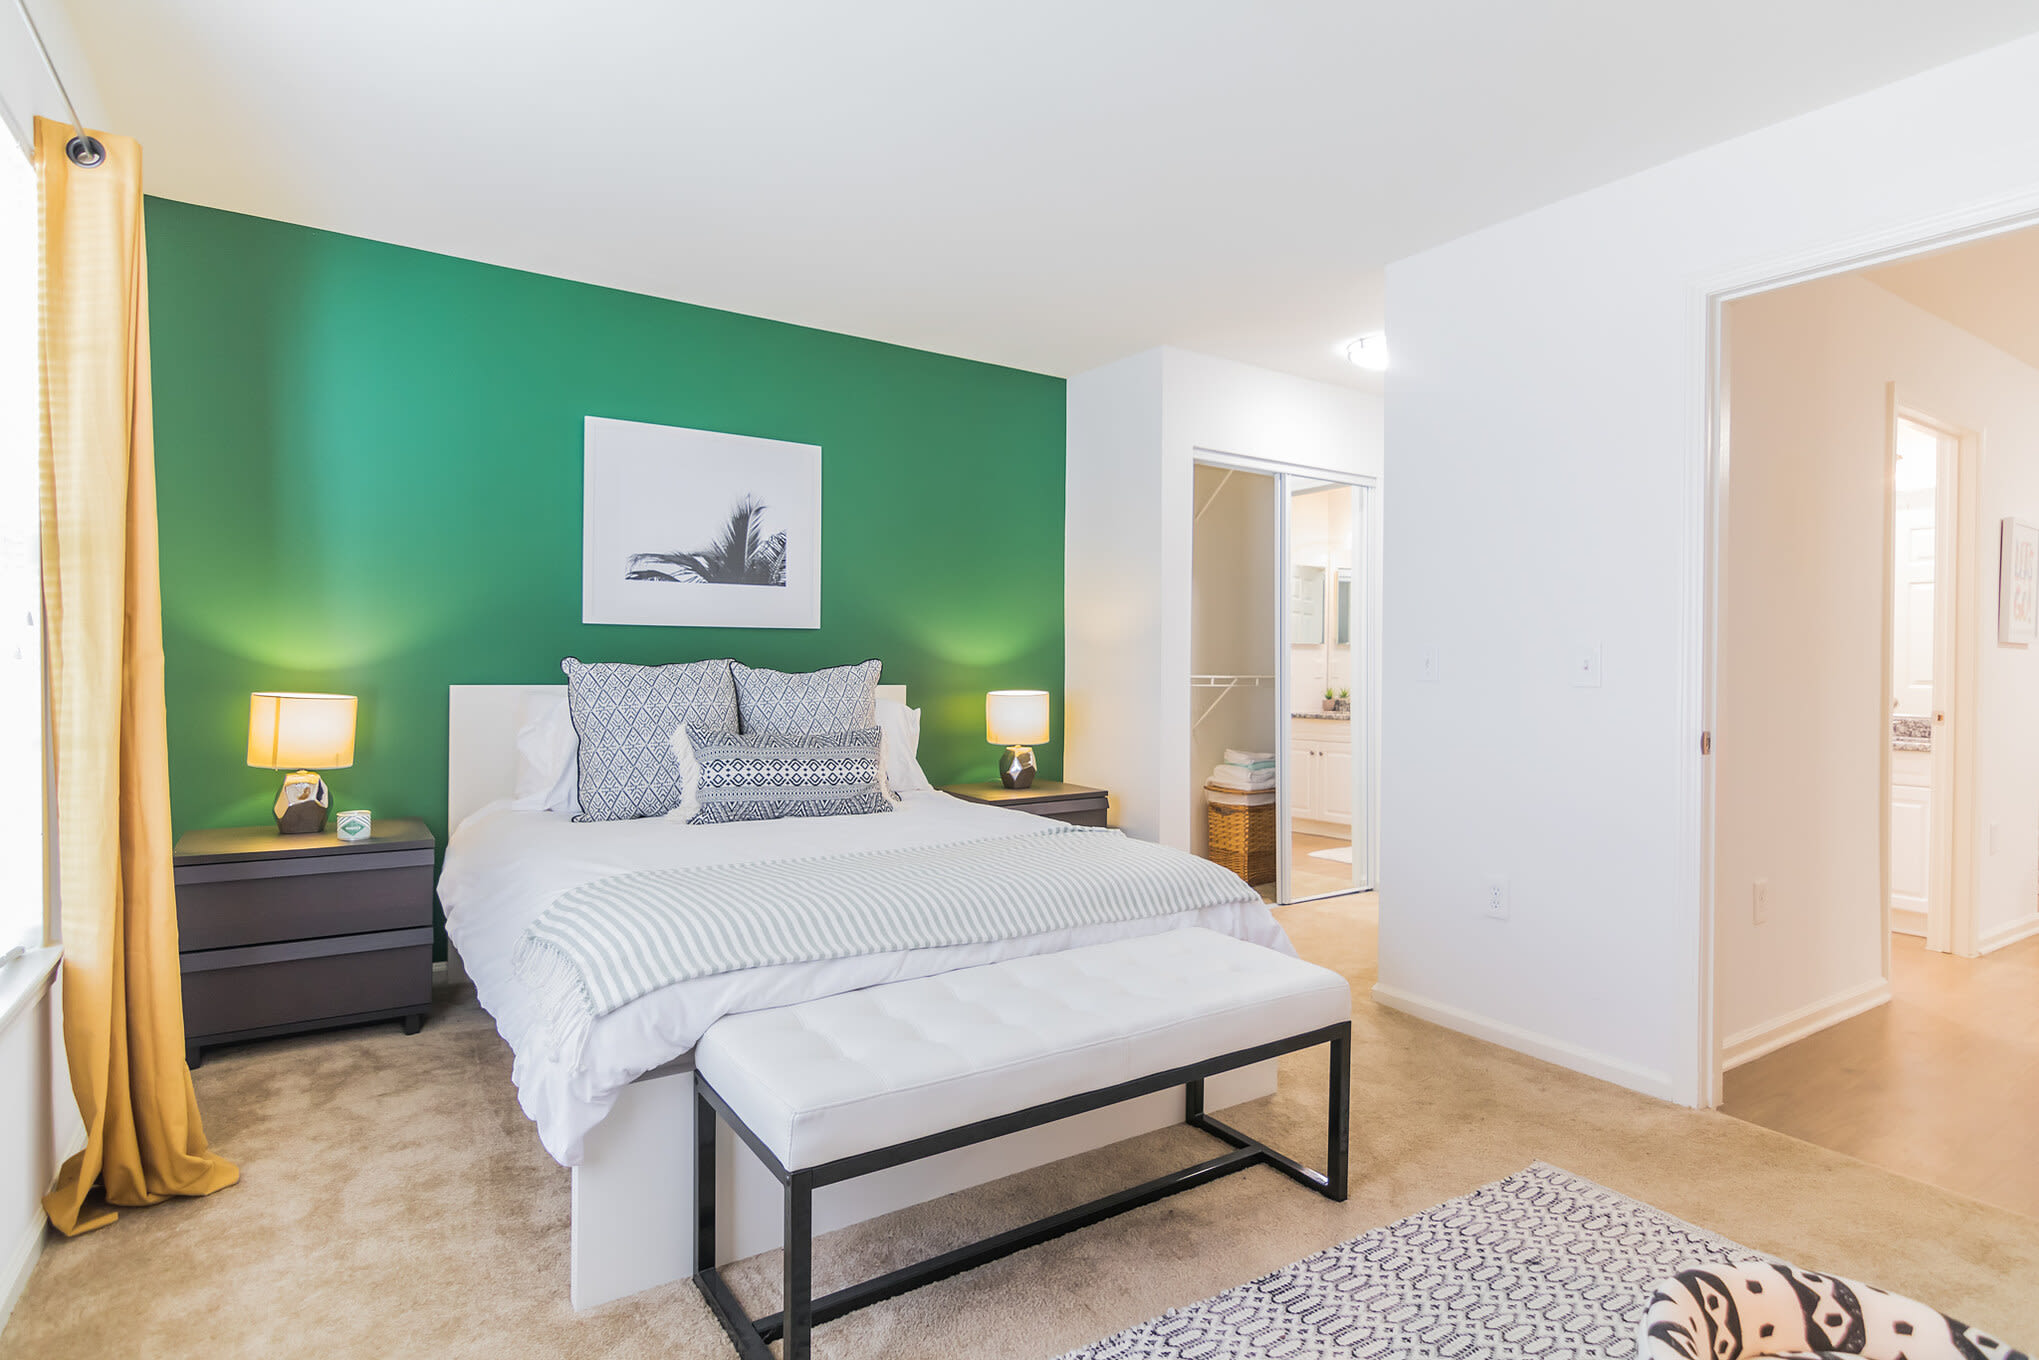 Green accent wall highlights this stylish bedroom with hardwood floors and ample natural light at Eagle Rock Apartments at Freehold in Freehold, New Jersey